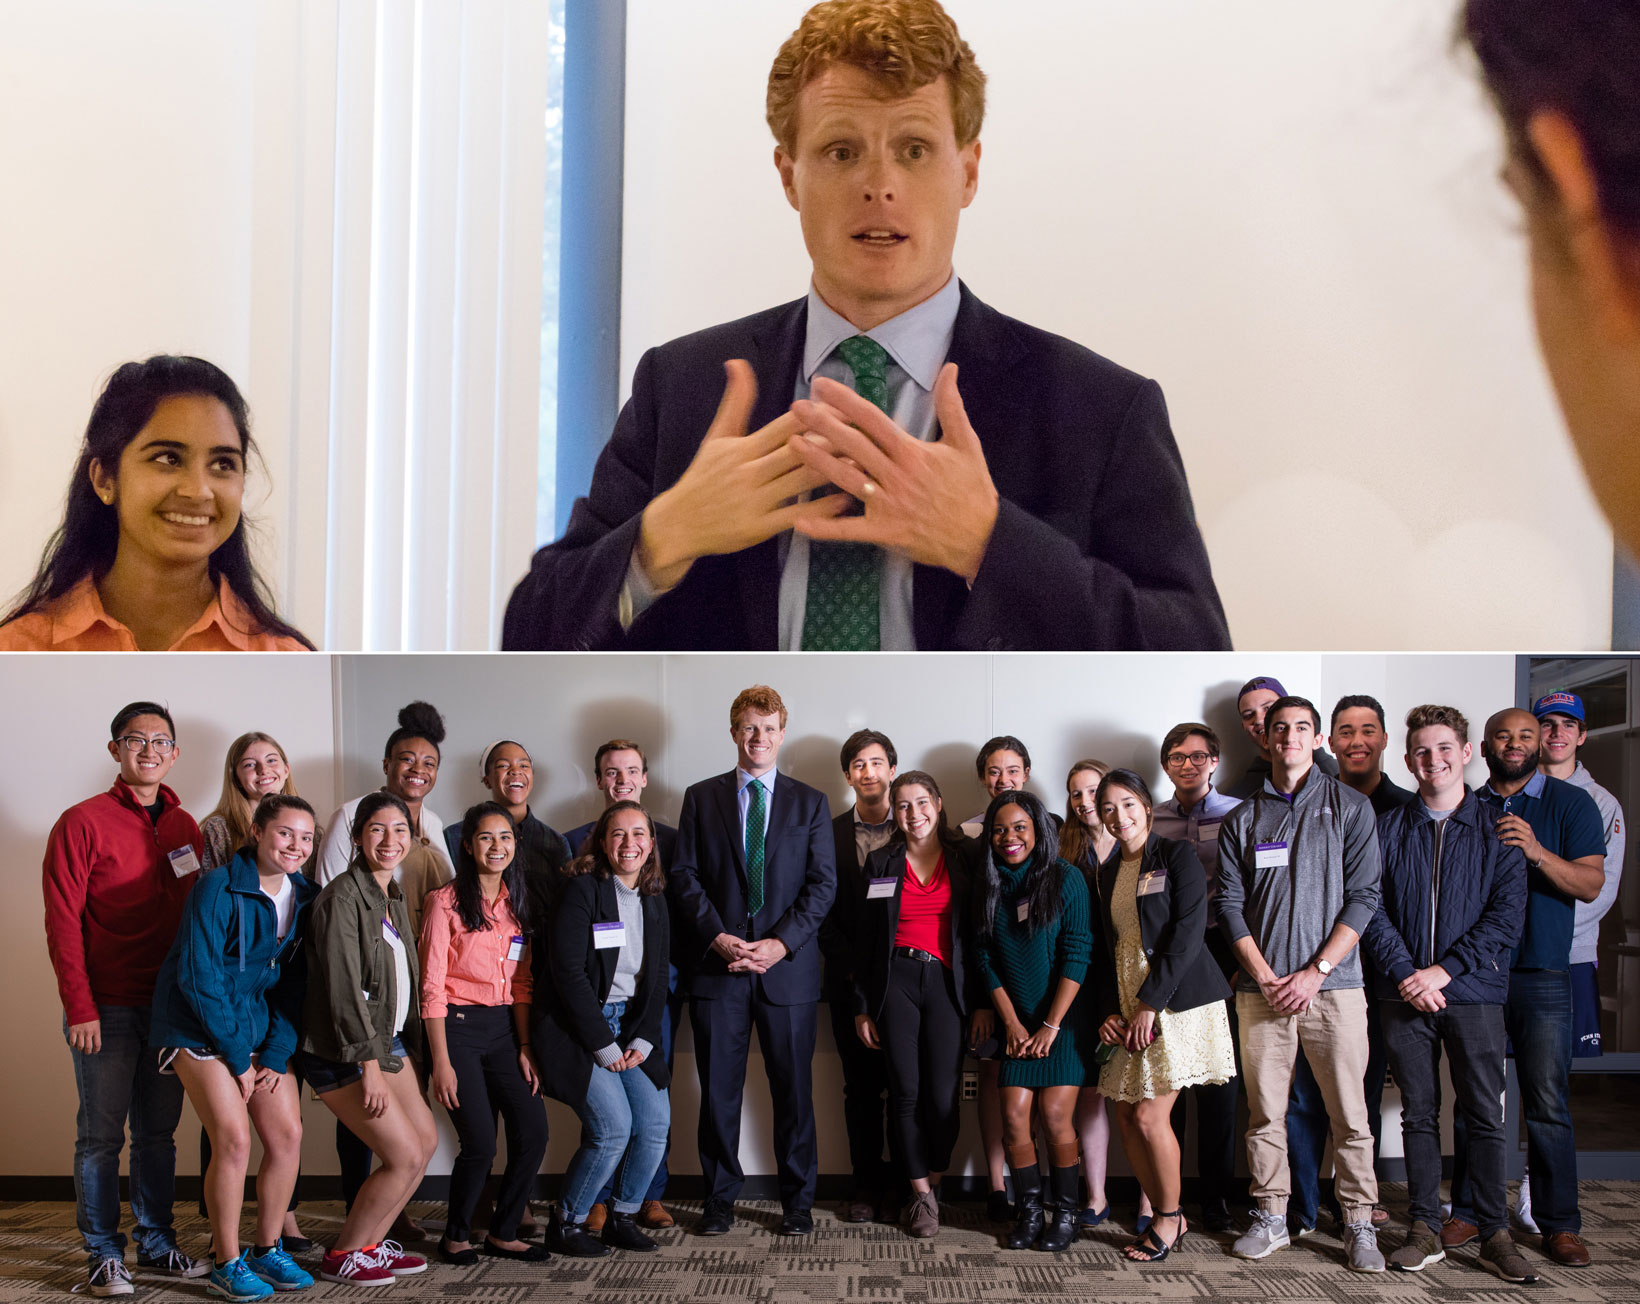 Joseph Kennedy meets with Amherst student.